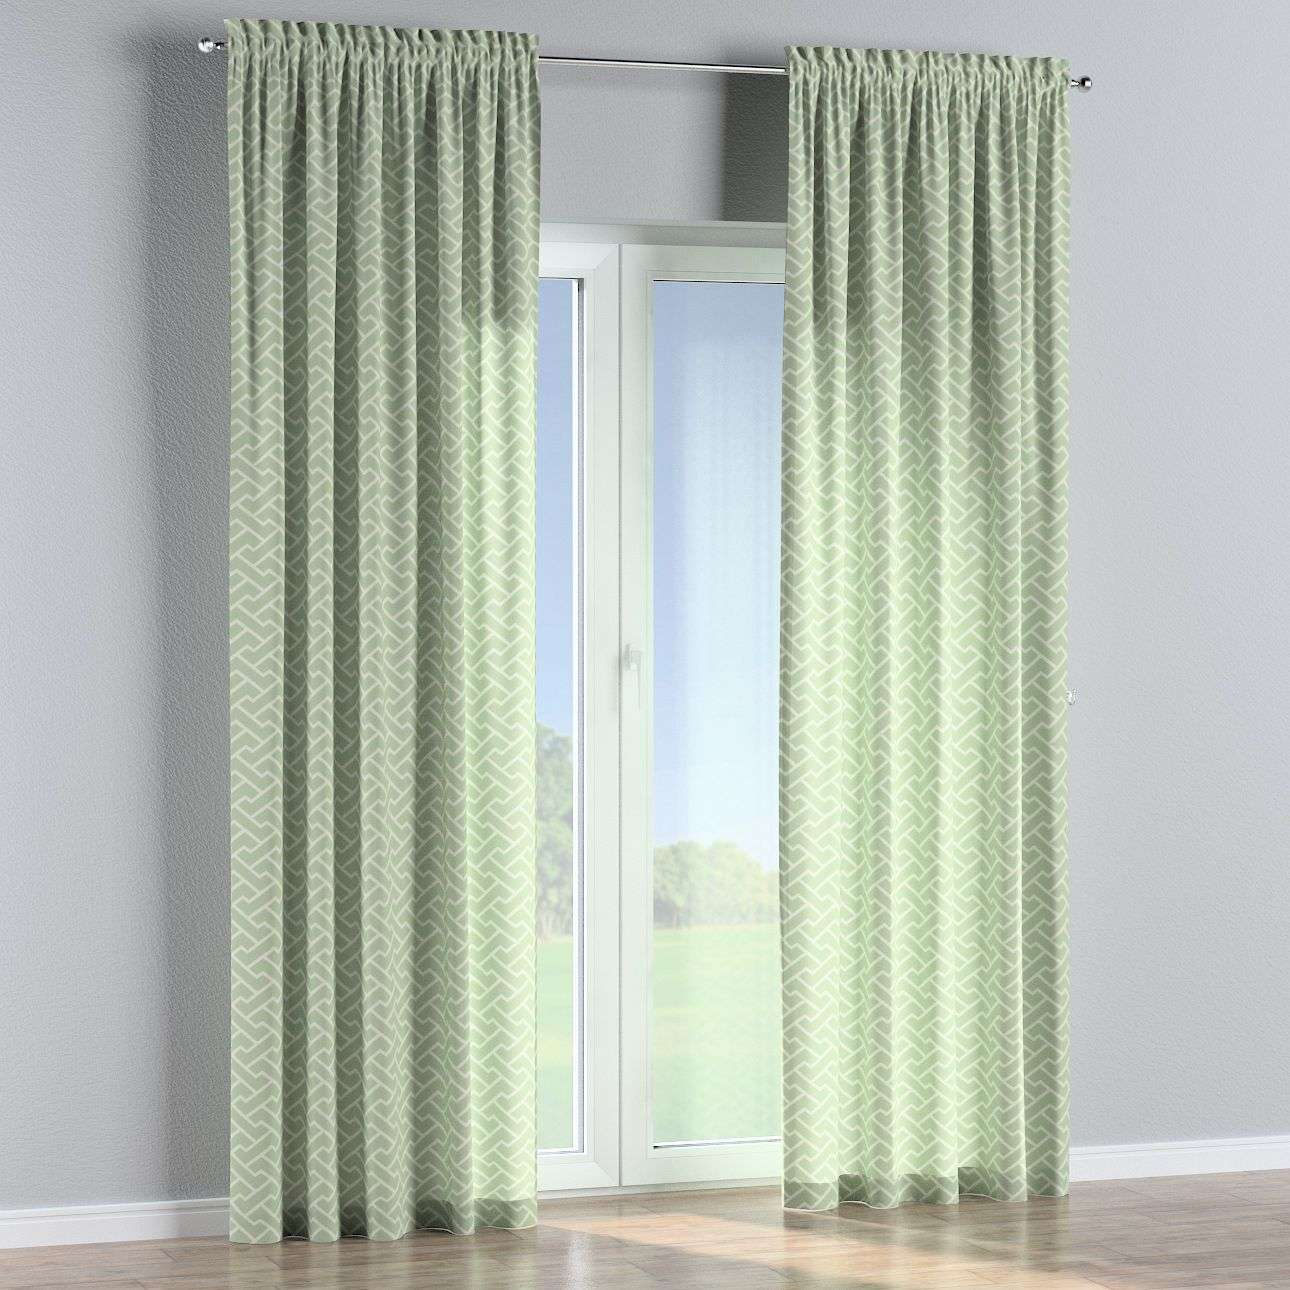 Slot and frill curtains in collection Comics/Geometrical, fabric: 141-63